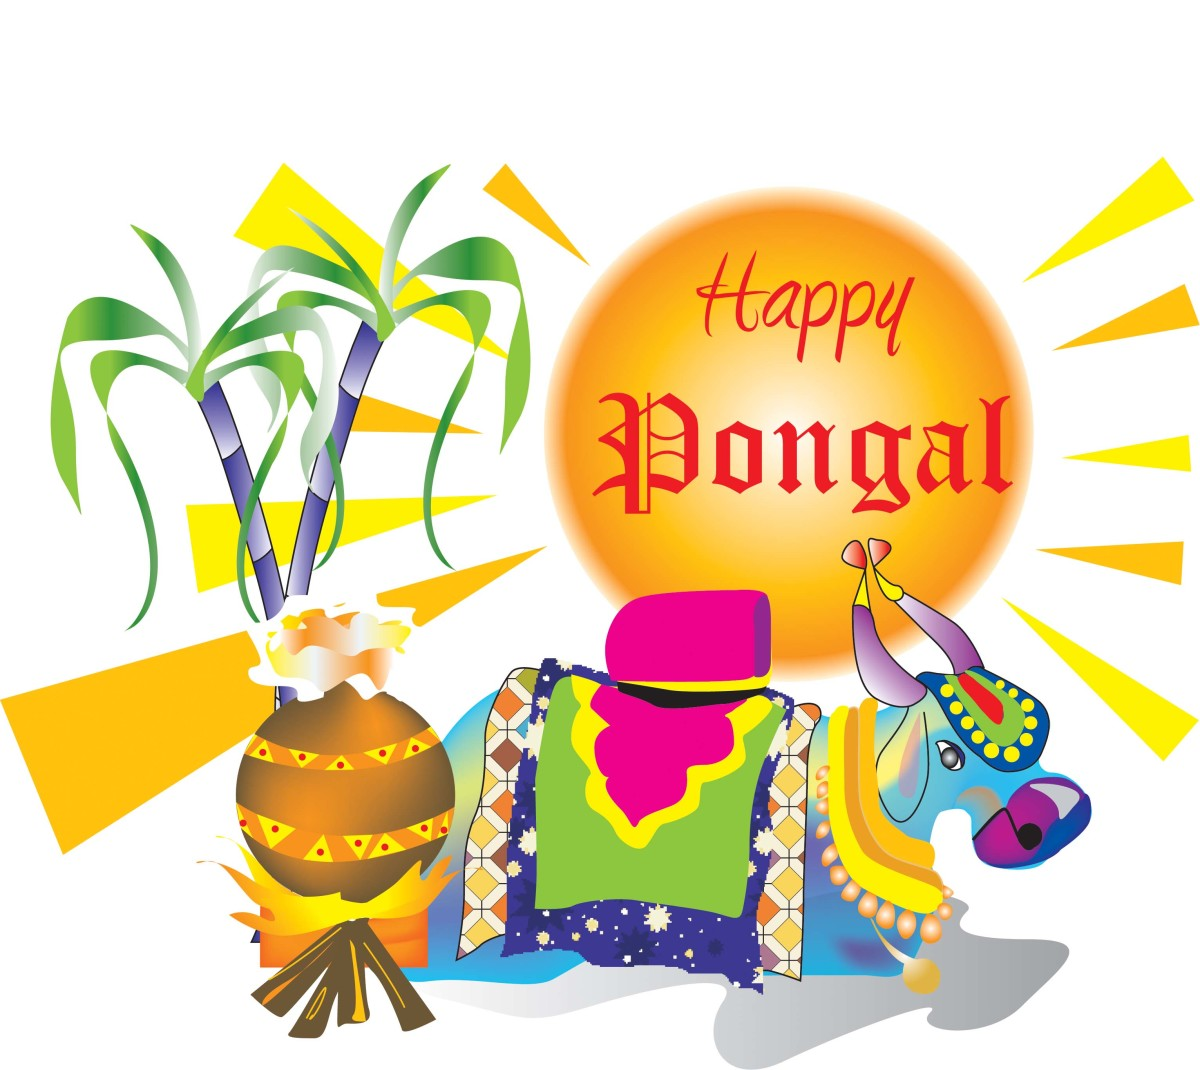 Why celebrate Pongal? - A festival in South India